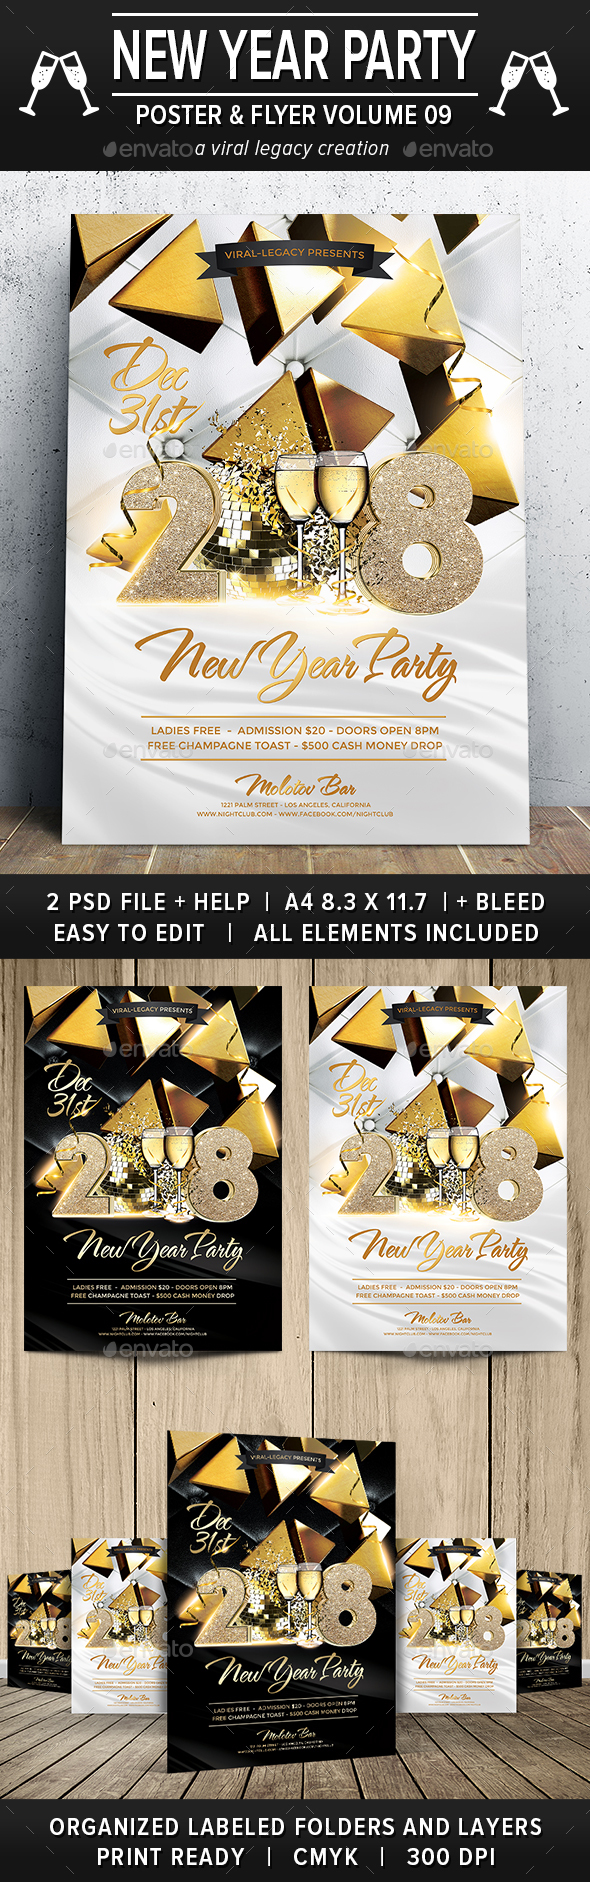 New Year Party Poster / Flyer V09 - Flyers Print Templates